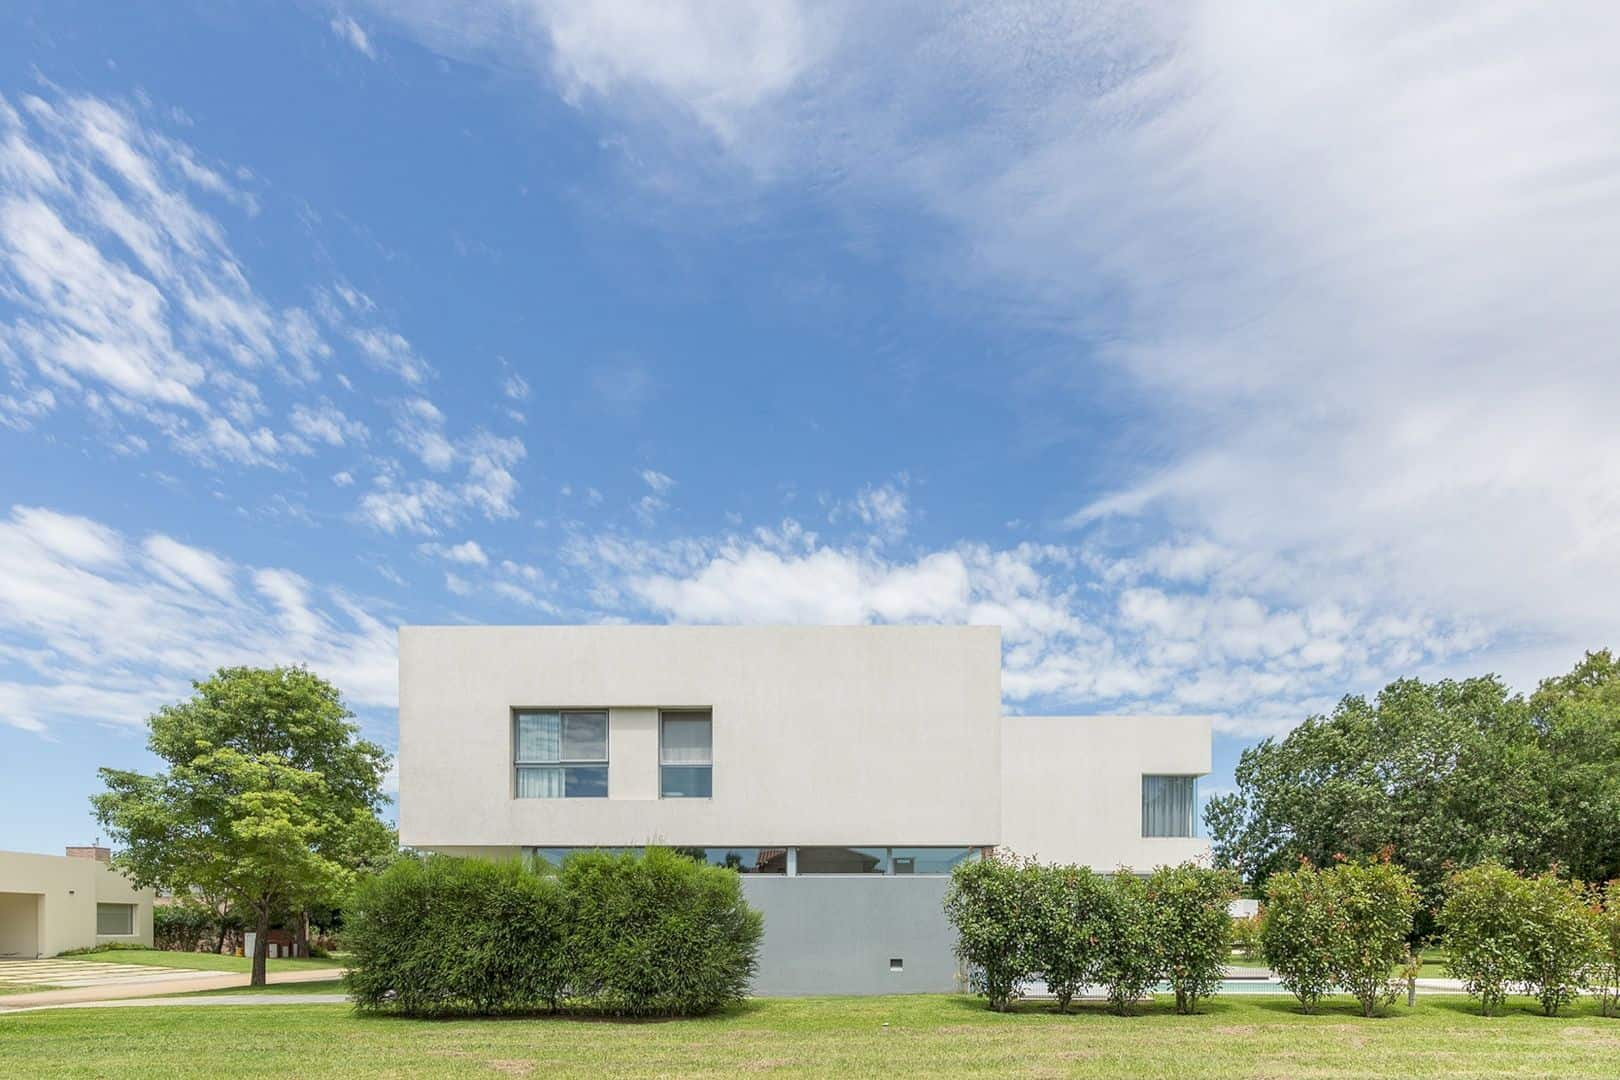 House In El Paso Enhancing The Relationship Inside With The Surrounding Landscape 10